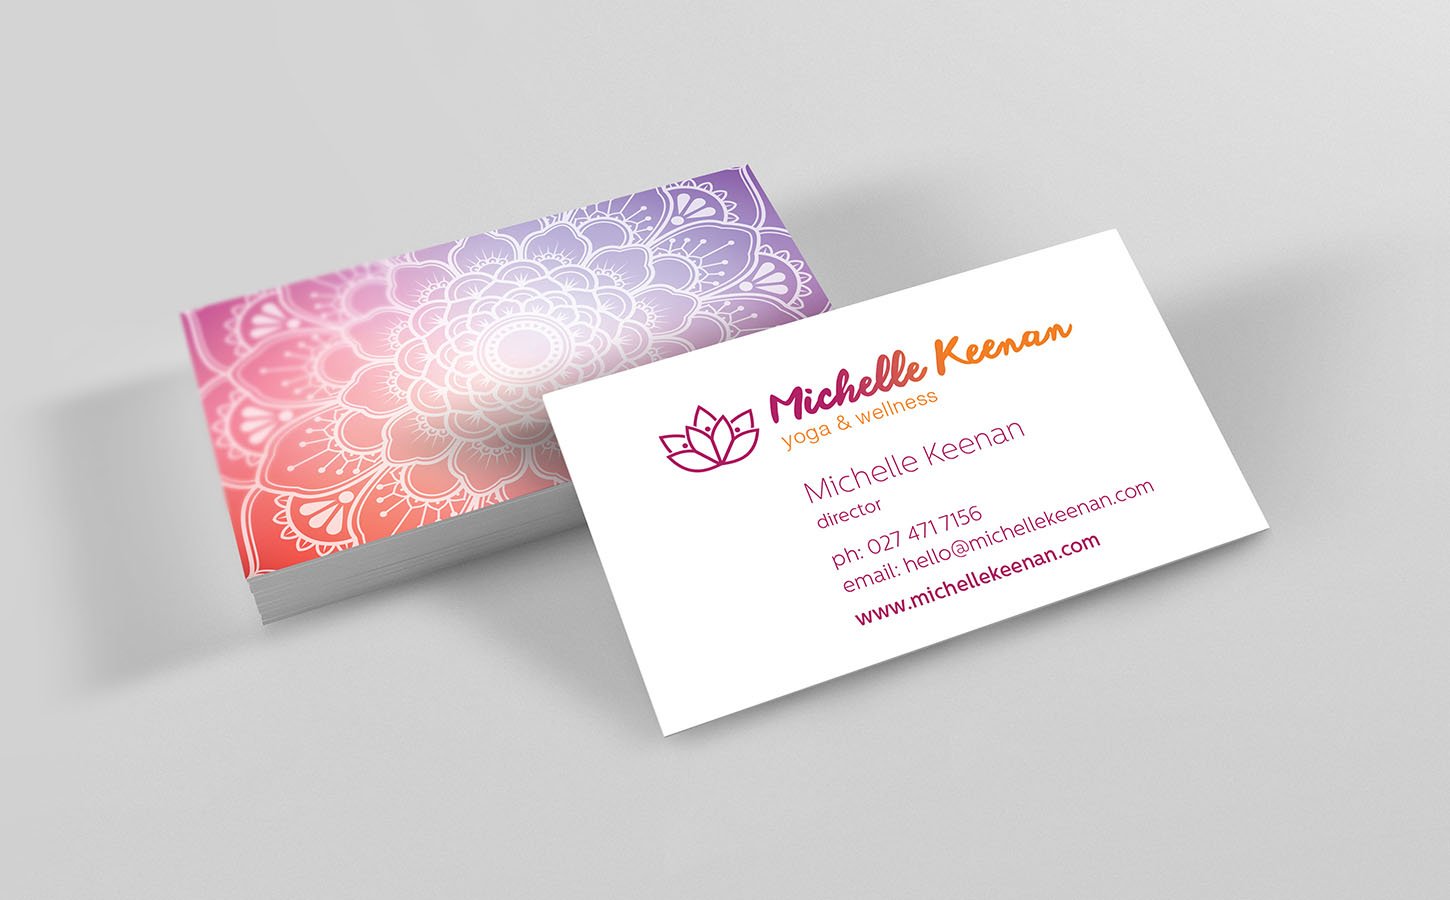 Business Cards Michelle Keenan Yoga Instructor